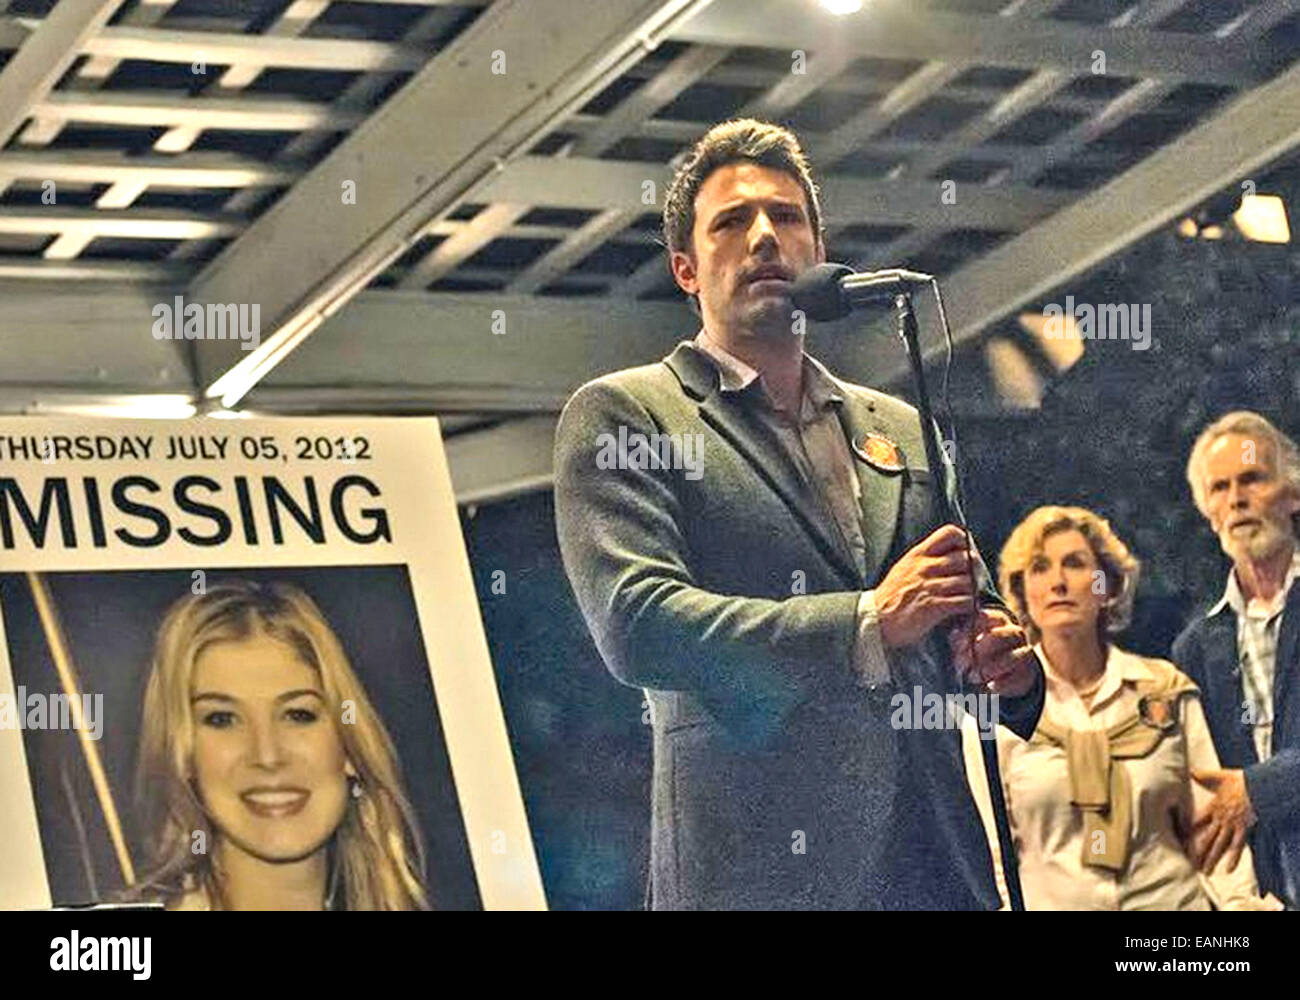 GONE GIRL 2014 Twentieth Century Fox film with from left Rosamund Pike, Ben Affleck, Lisa Barnes, David Clennon - Stock Image